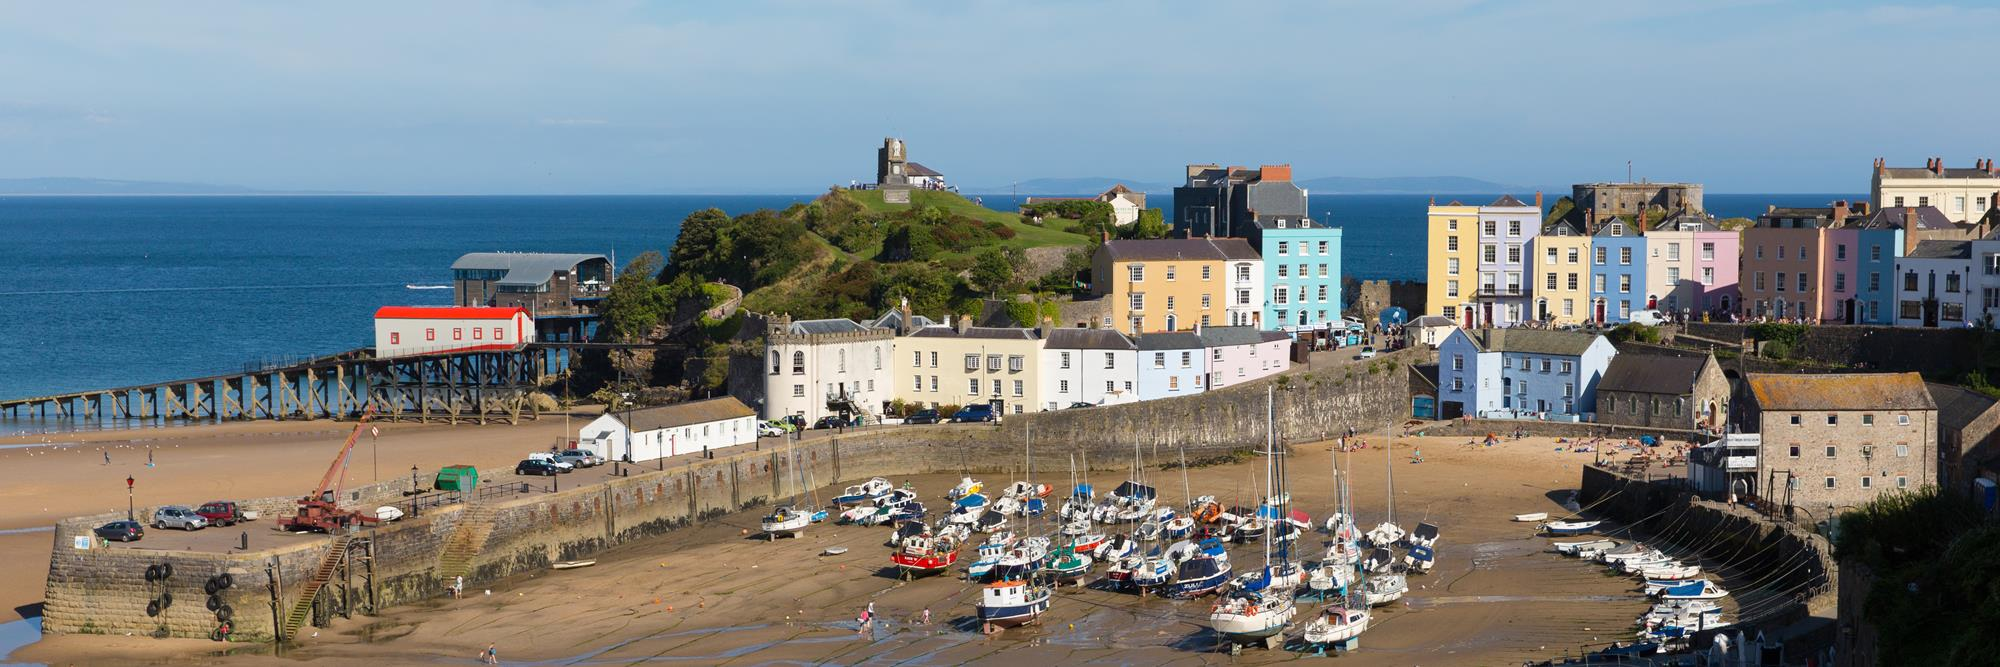 Tenby Harbour on the Pembrokeshire Coast Path